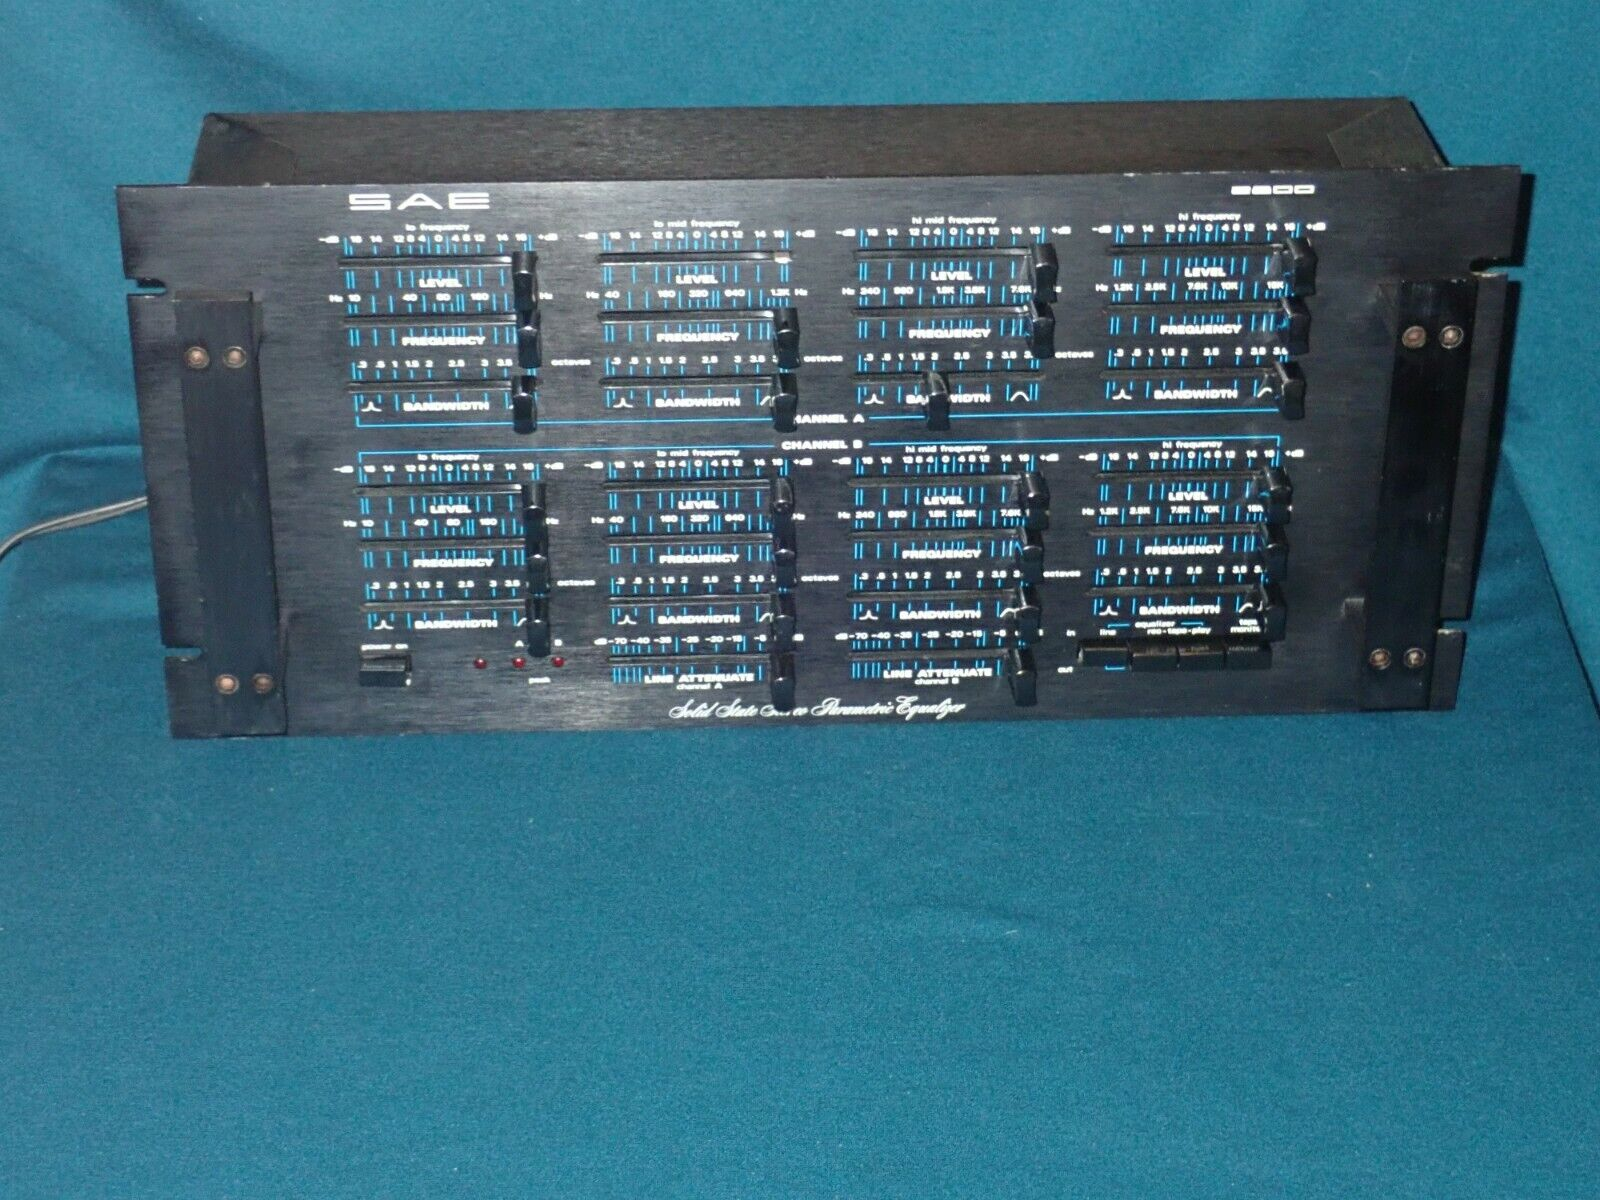 SAE 2800 Solid State Stereo Parametric Equalizer, works well, serviced. Buy it now for 320.00